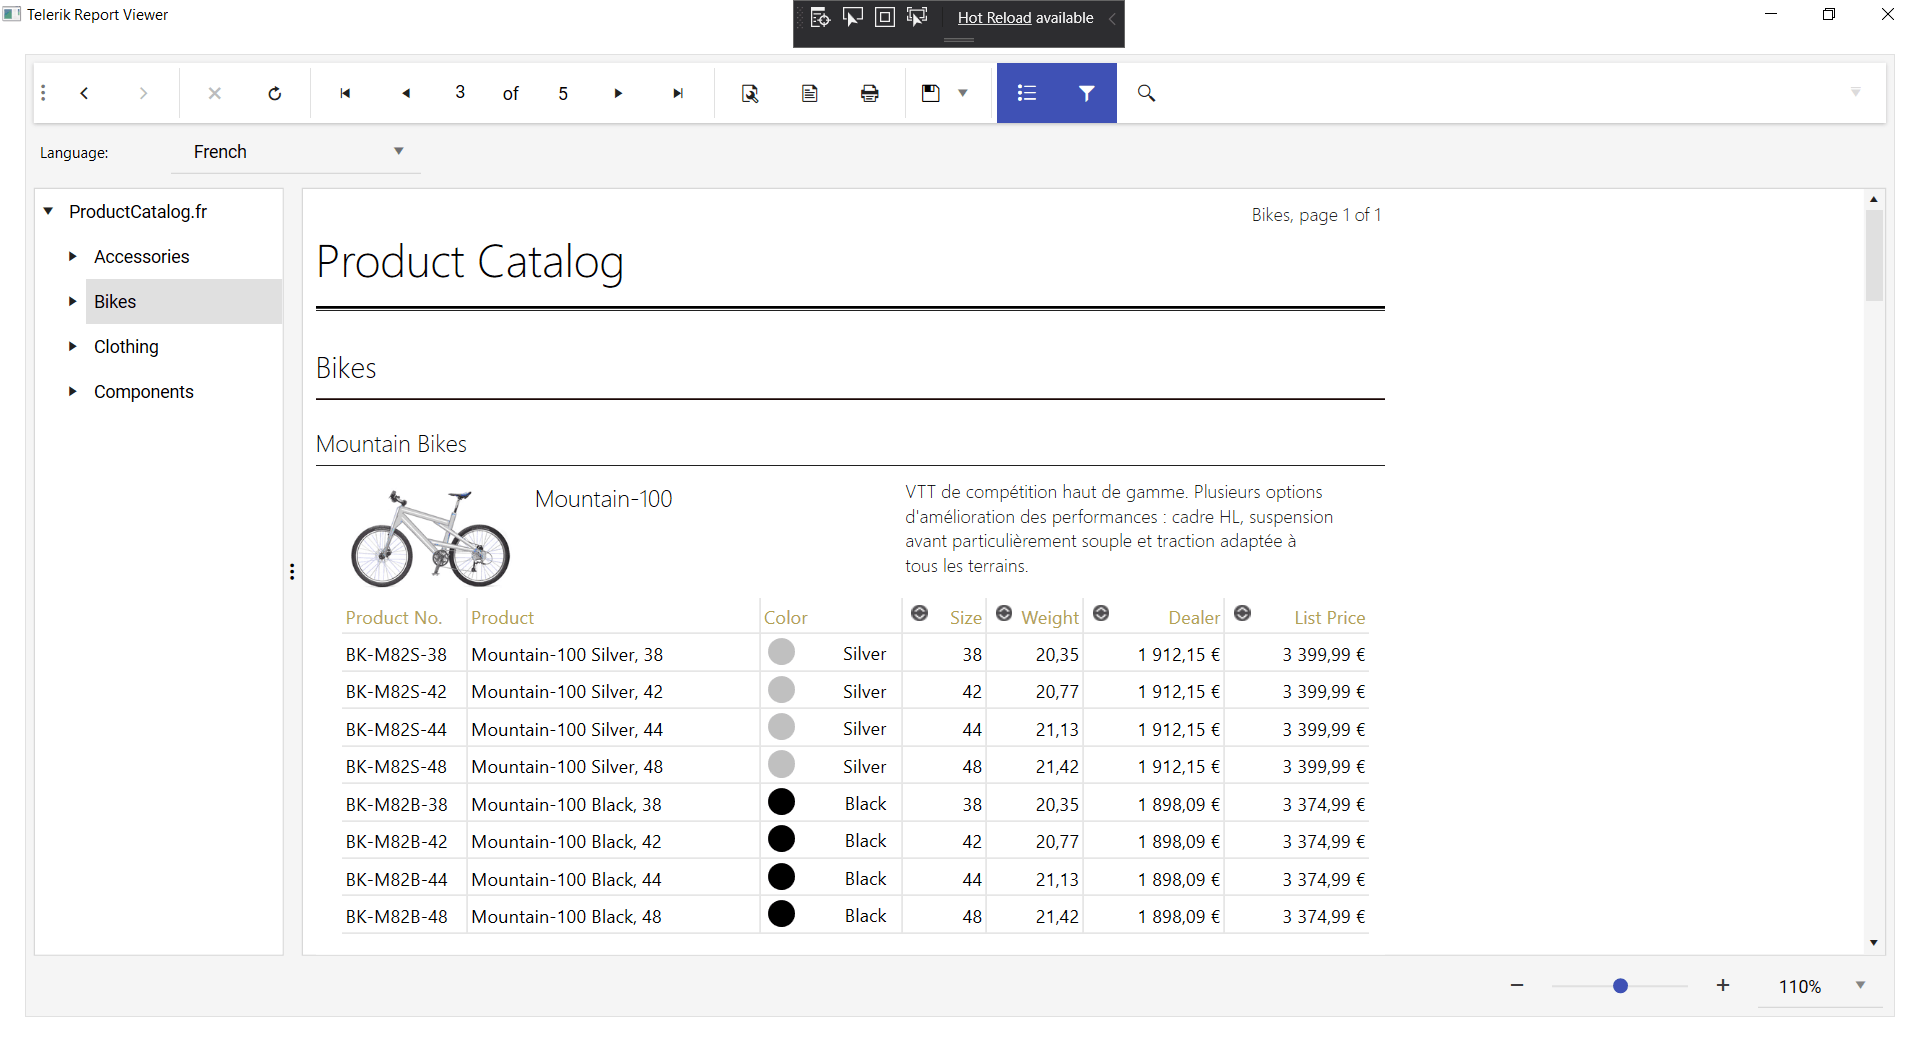 A similar catalog list of bikes, but with descriptions and details styled for French readers instead of English